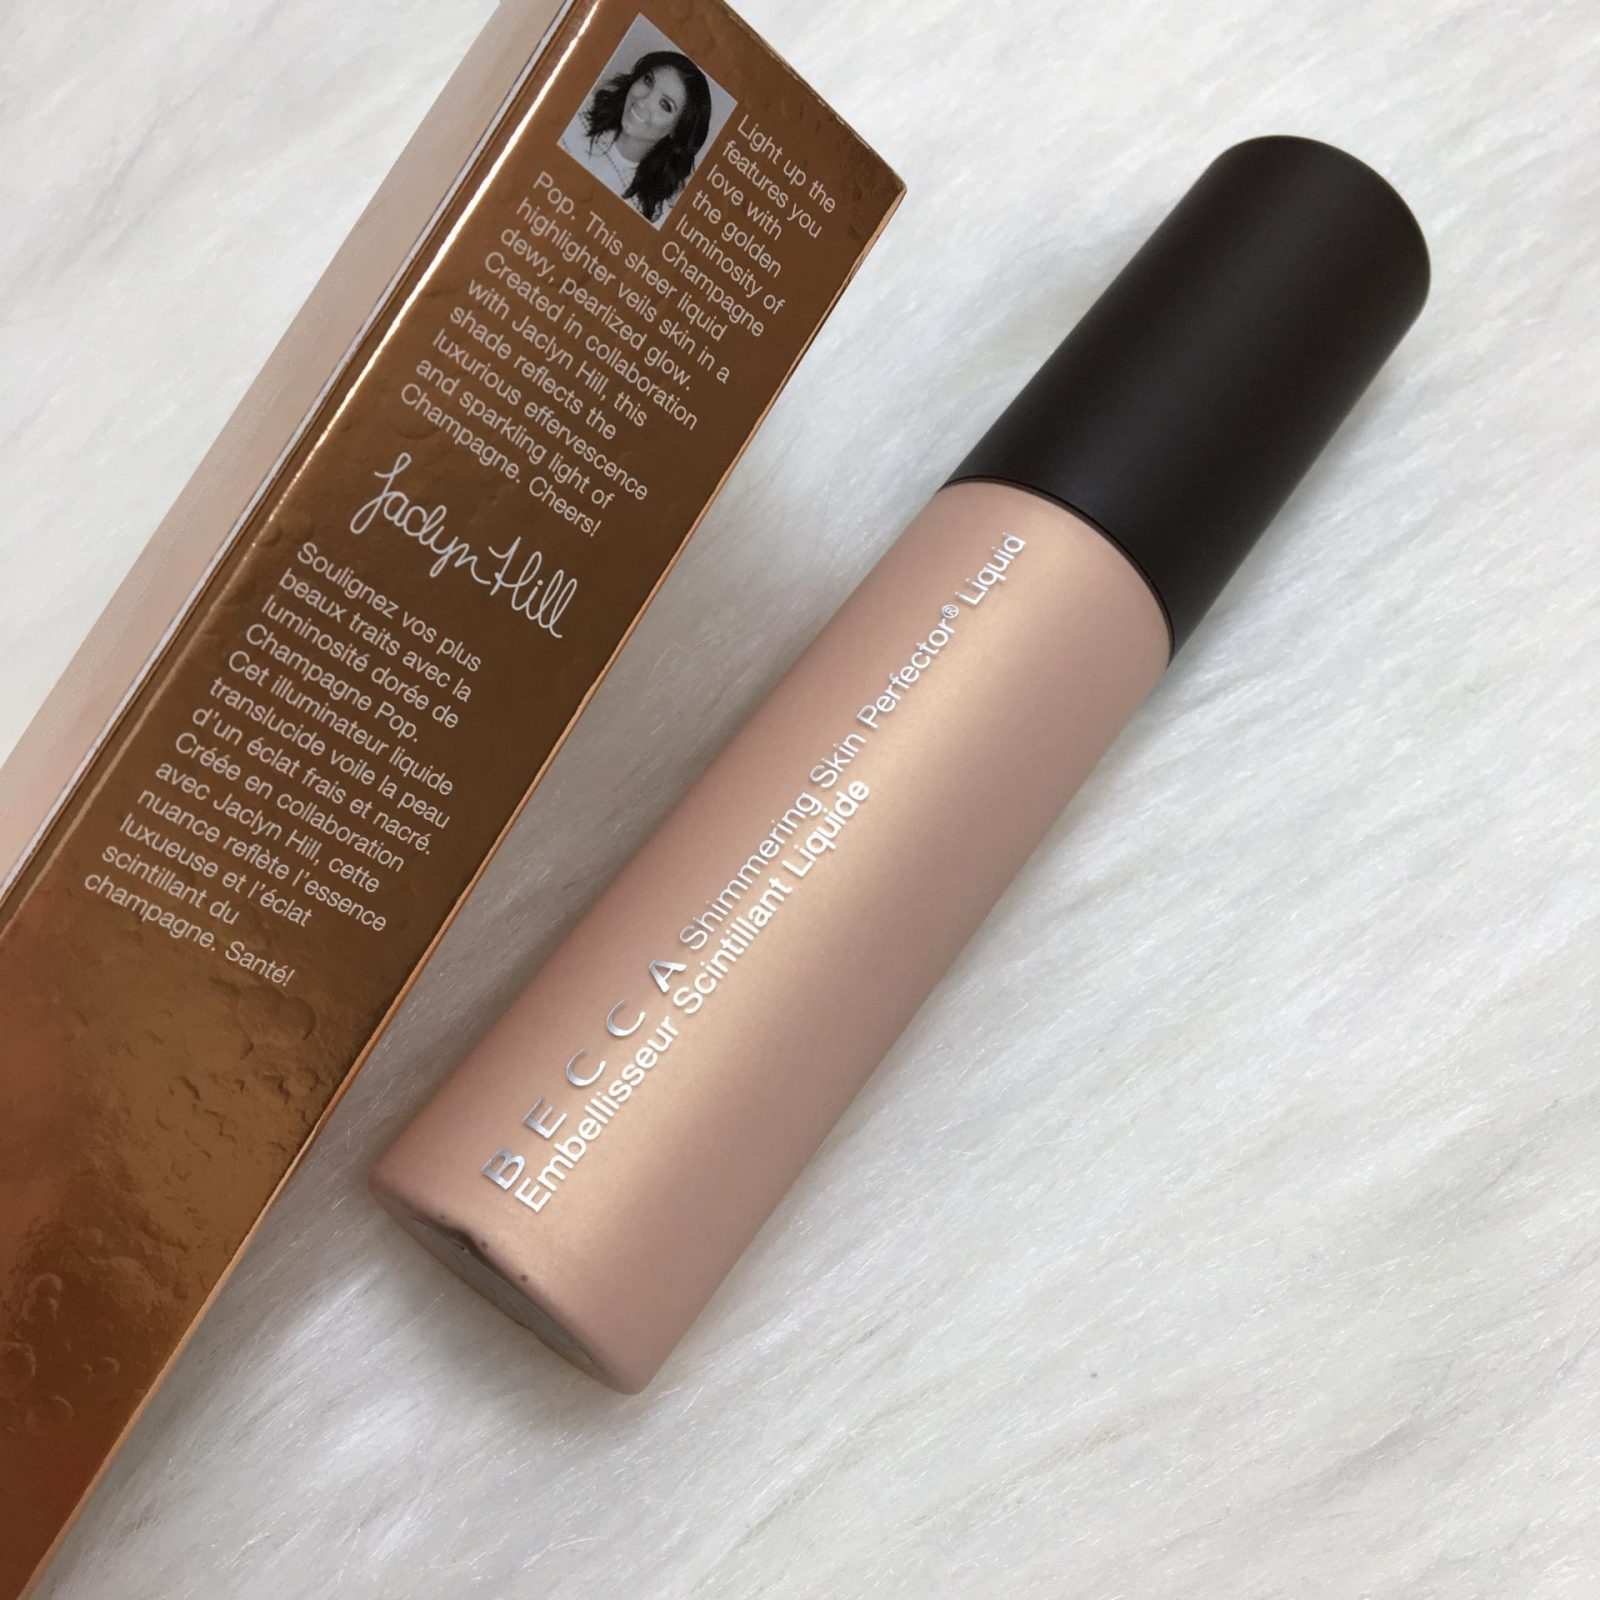 Becca Jaclyn Hill Champagne Pop Shimmering Skin Perfector | Bolt Blogs.JPG